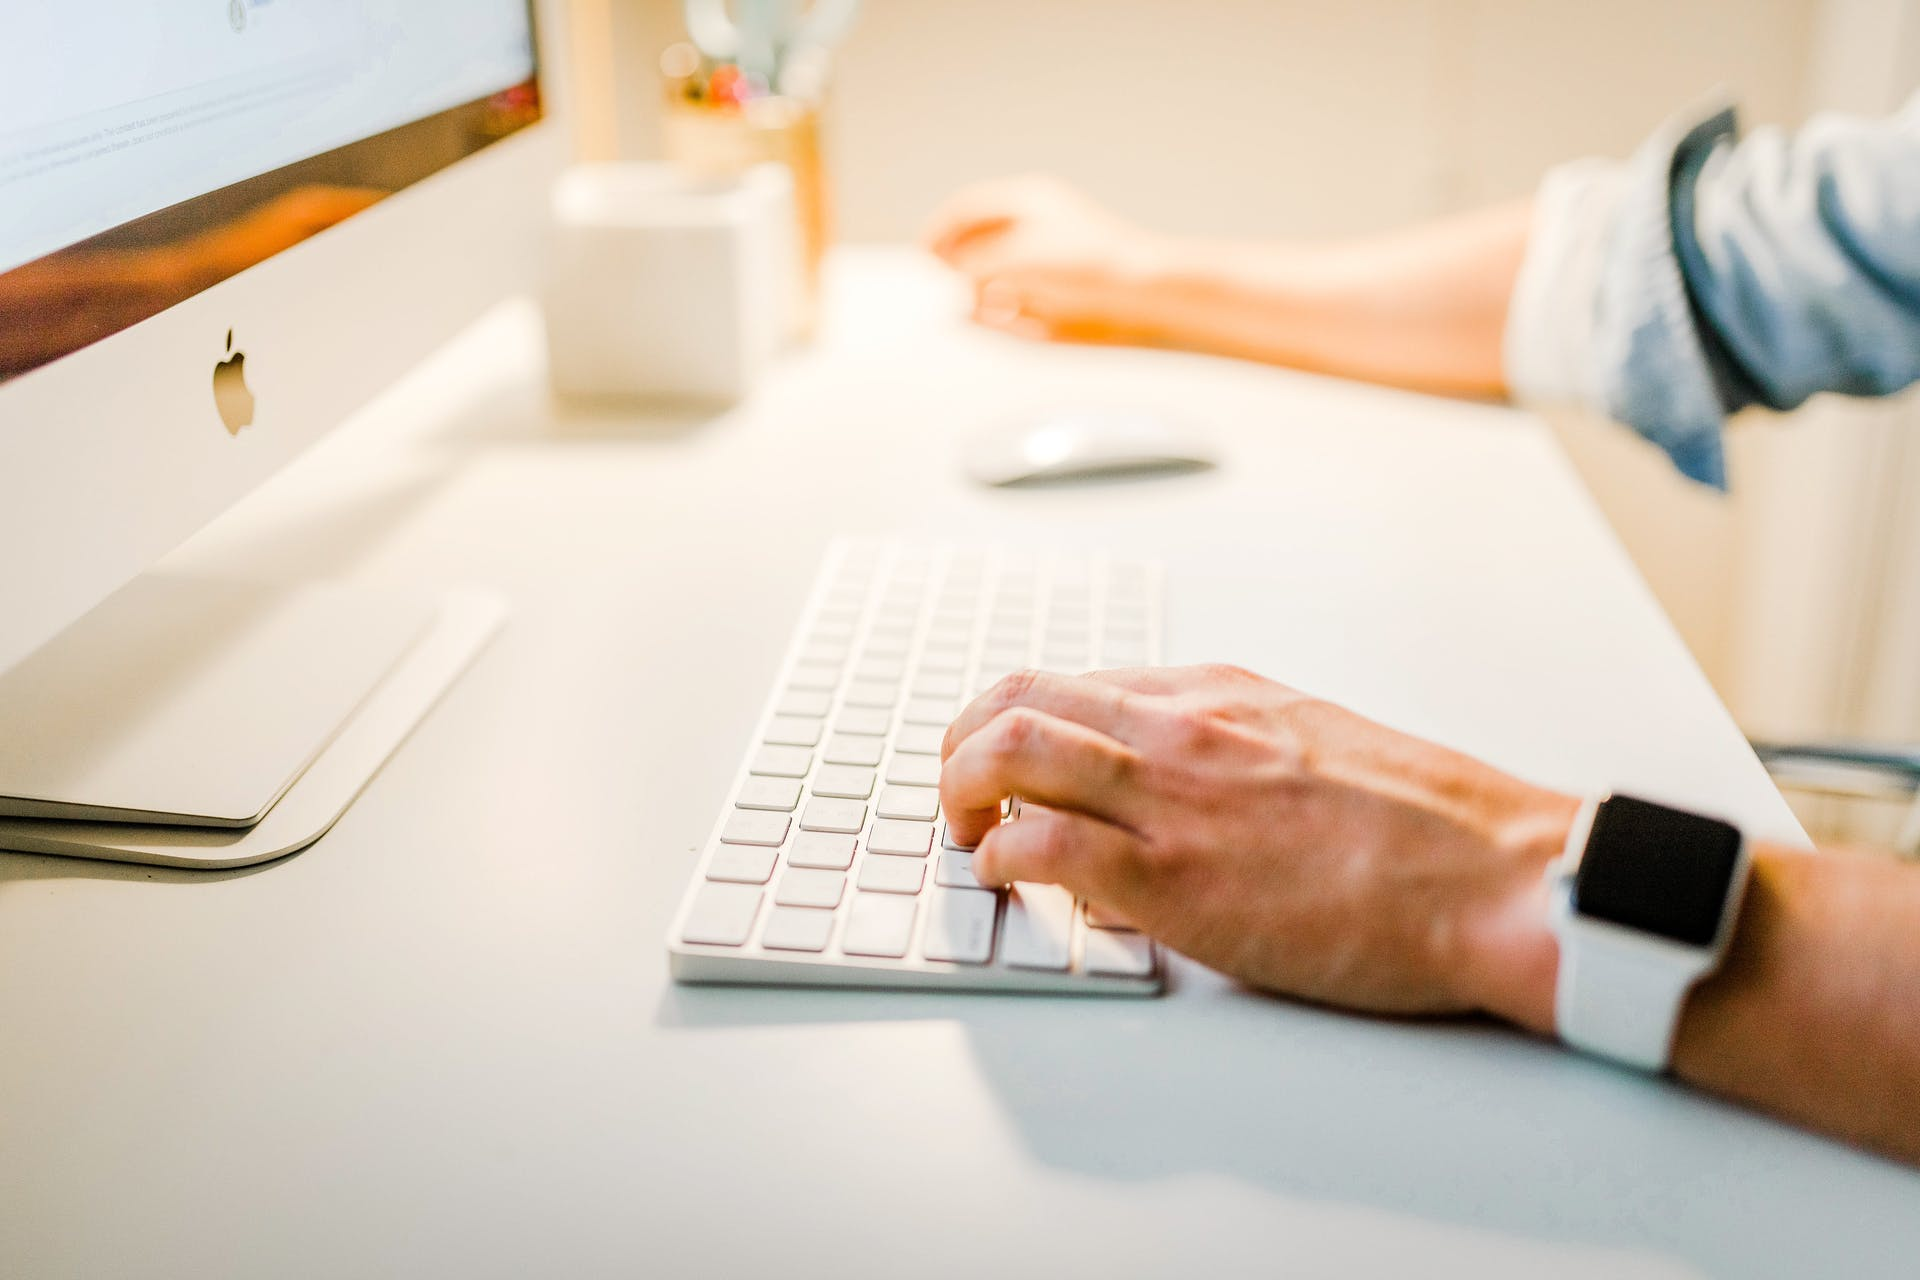 person wearing apple watch typing on a keyboard on their desk